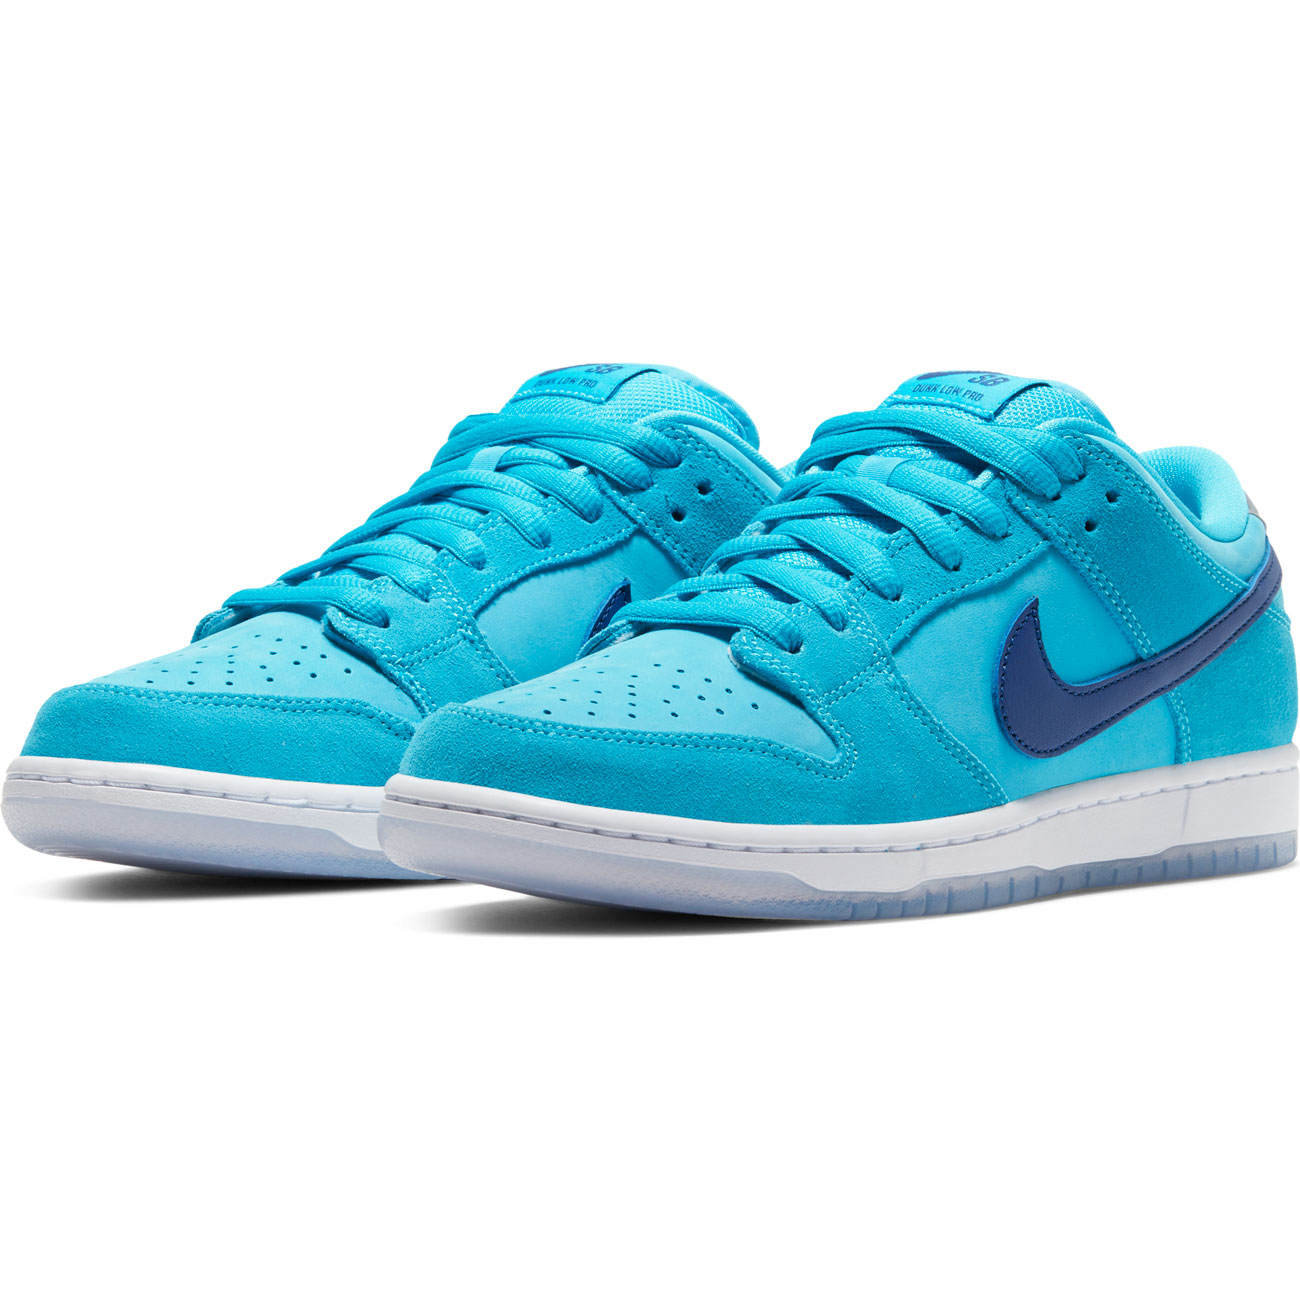 NIKE SB DUNK LOW PRO BLUE FURY/DEEP ROYAL-BLUE FURY-WHITE-CLEAR-MTLC SILVER